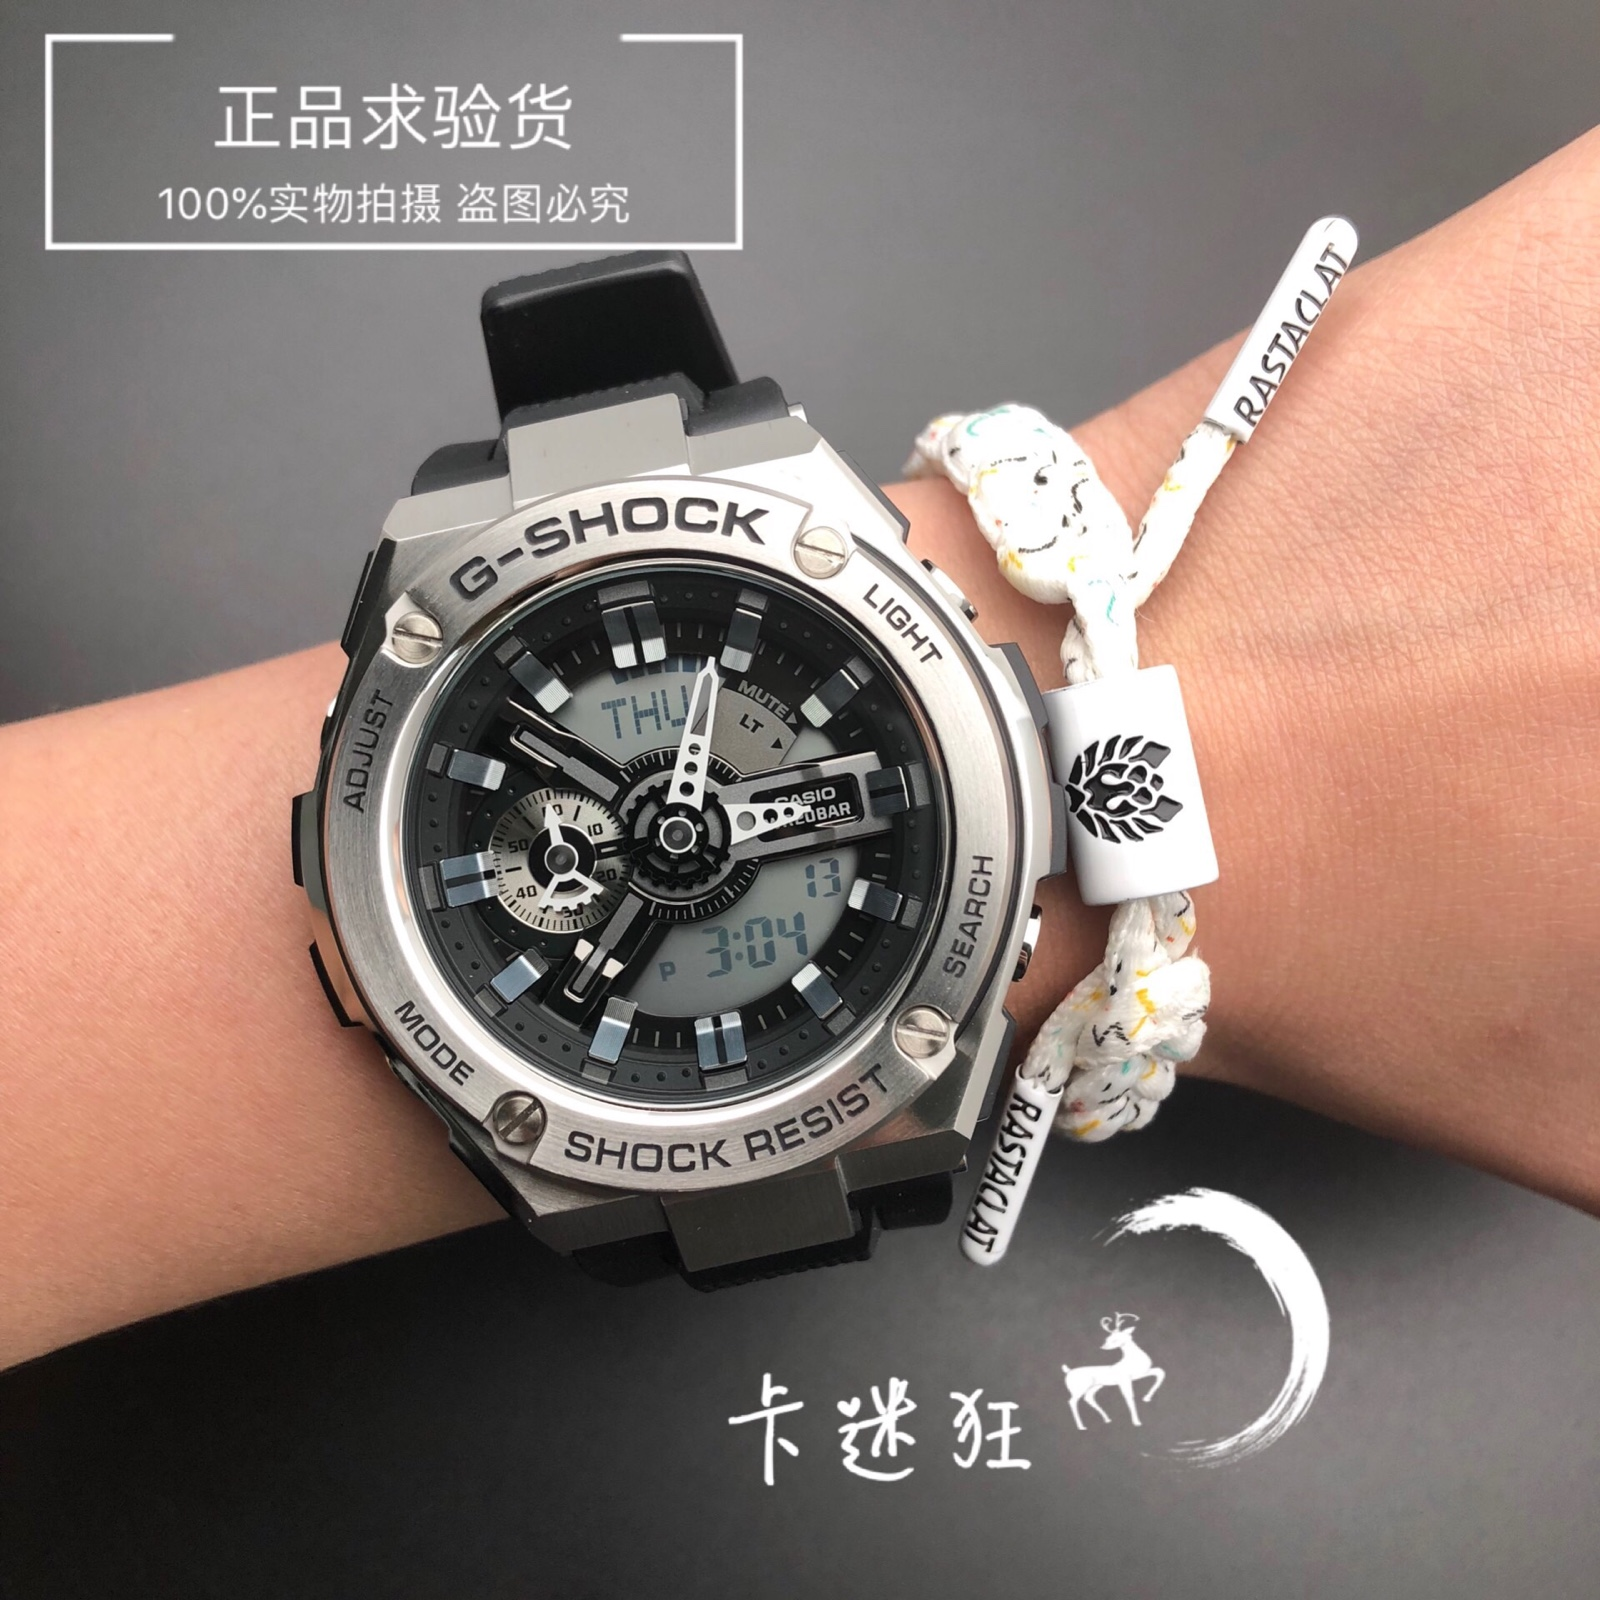 Casio Watch Male G Steel Ring Tough Metal Double Shock Gst 210b 1a Display